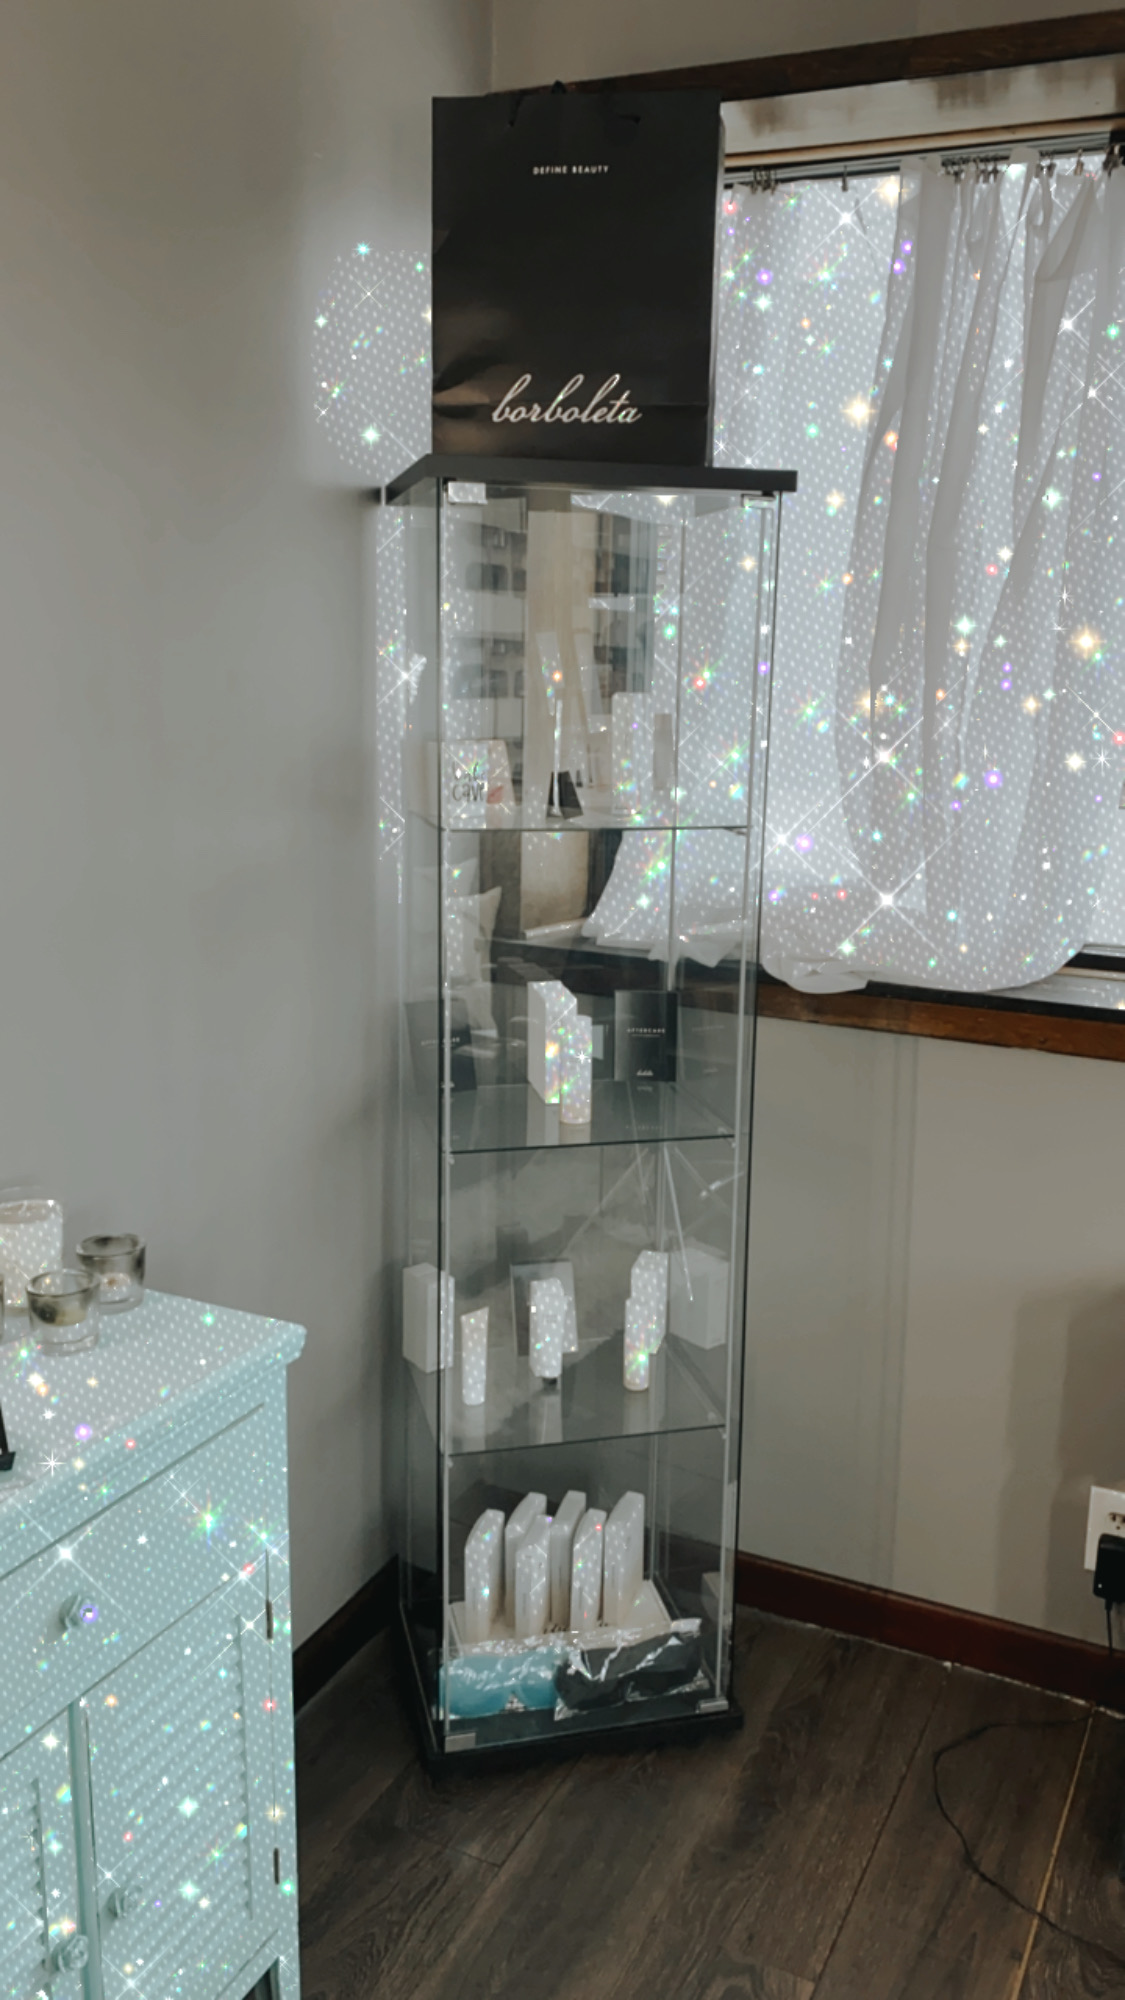 Retail Borboleta display case